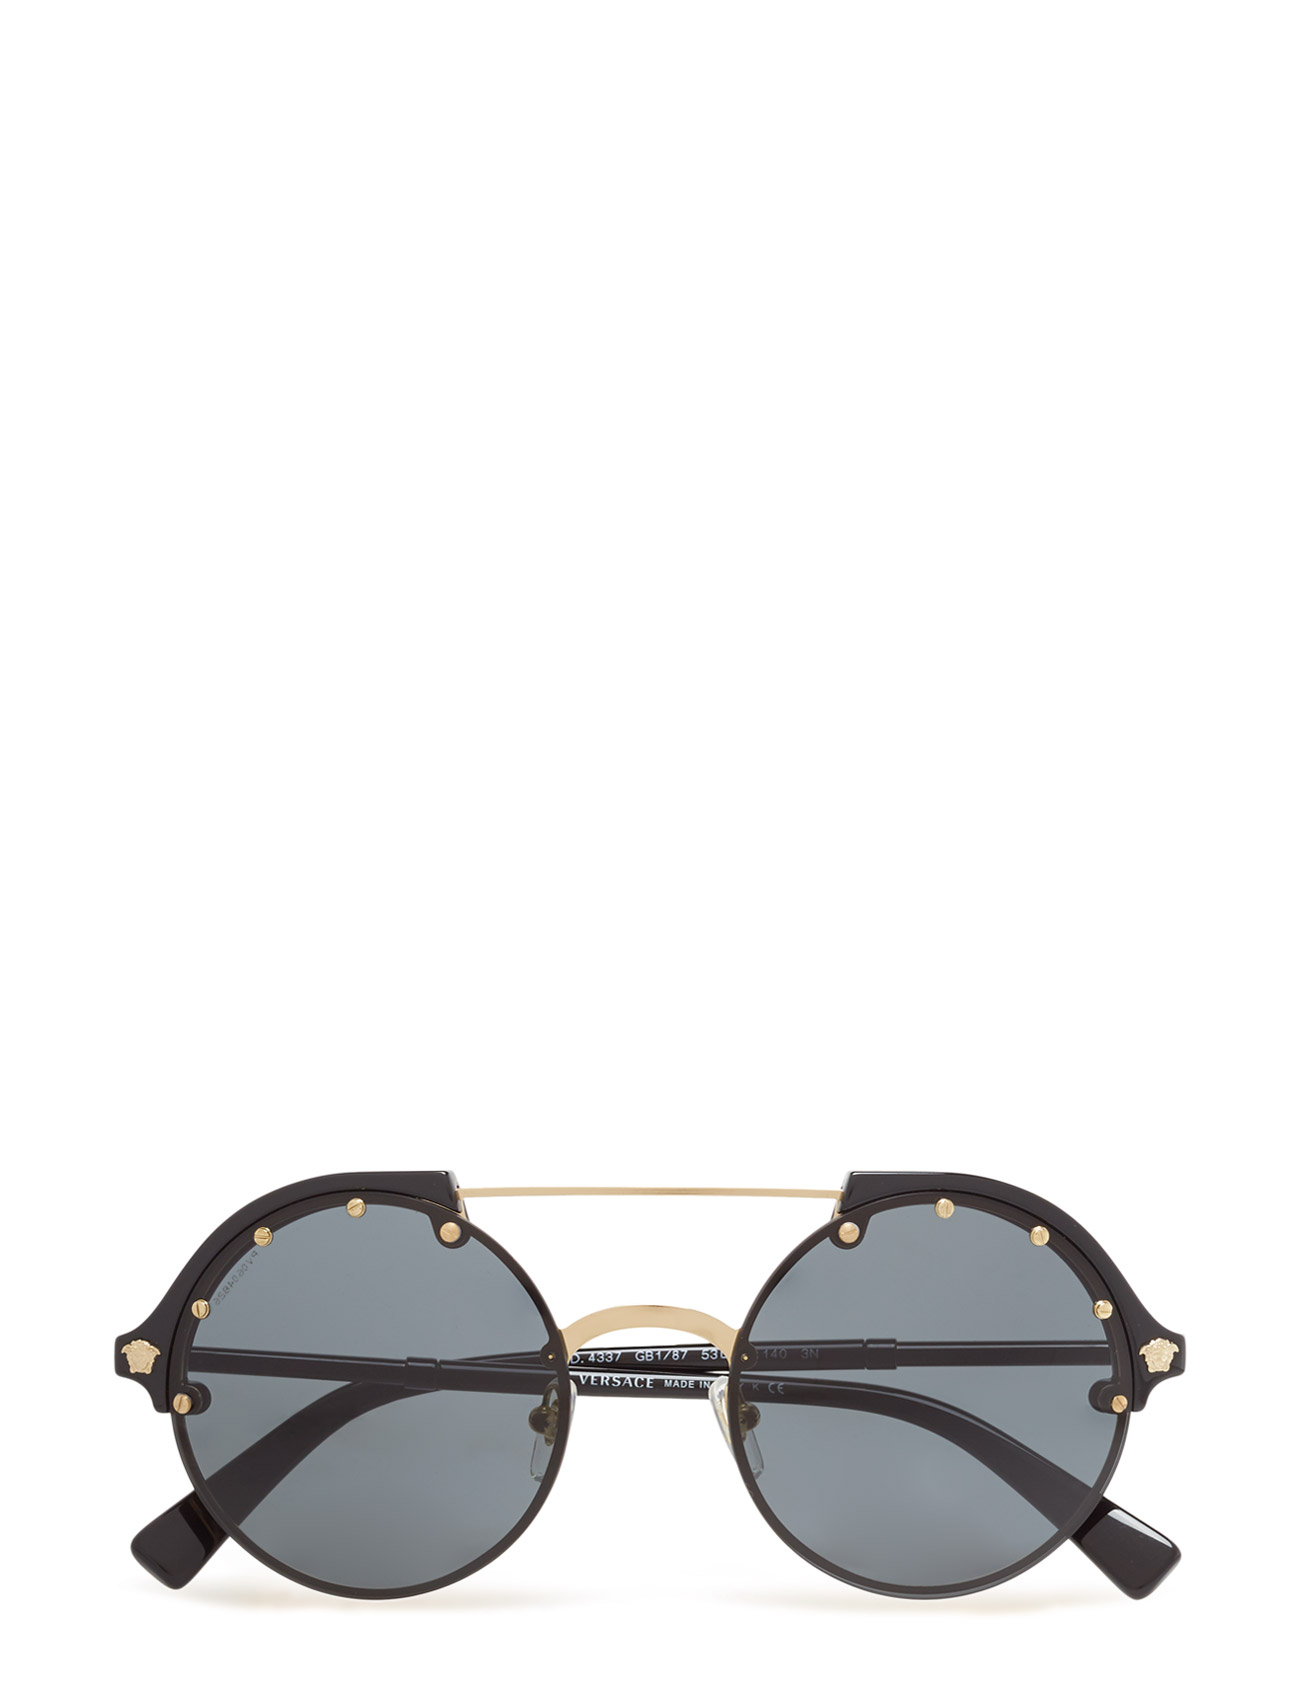 versace sunglasses – Not defined på boozt.com dk